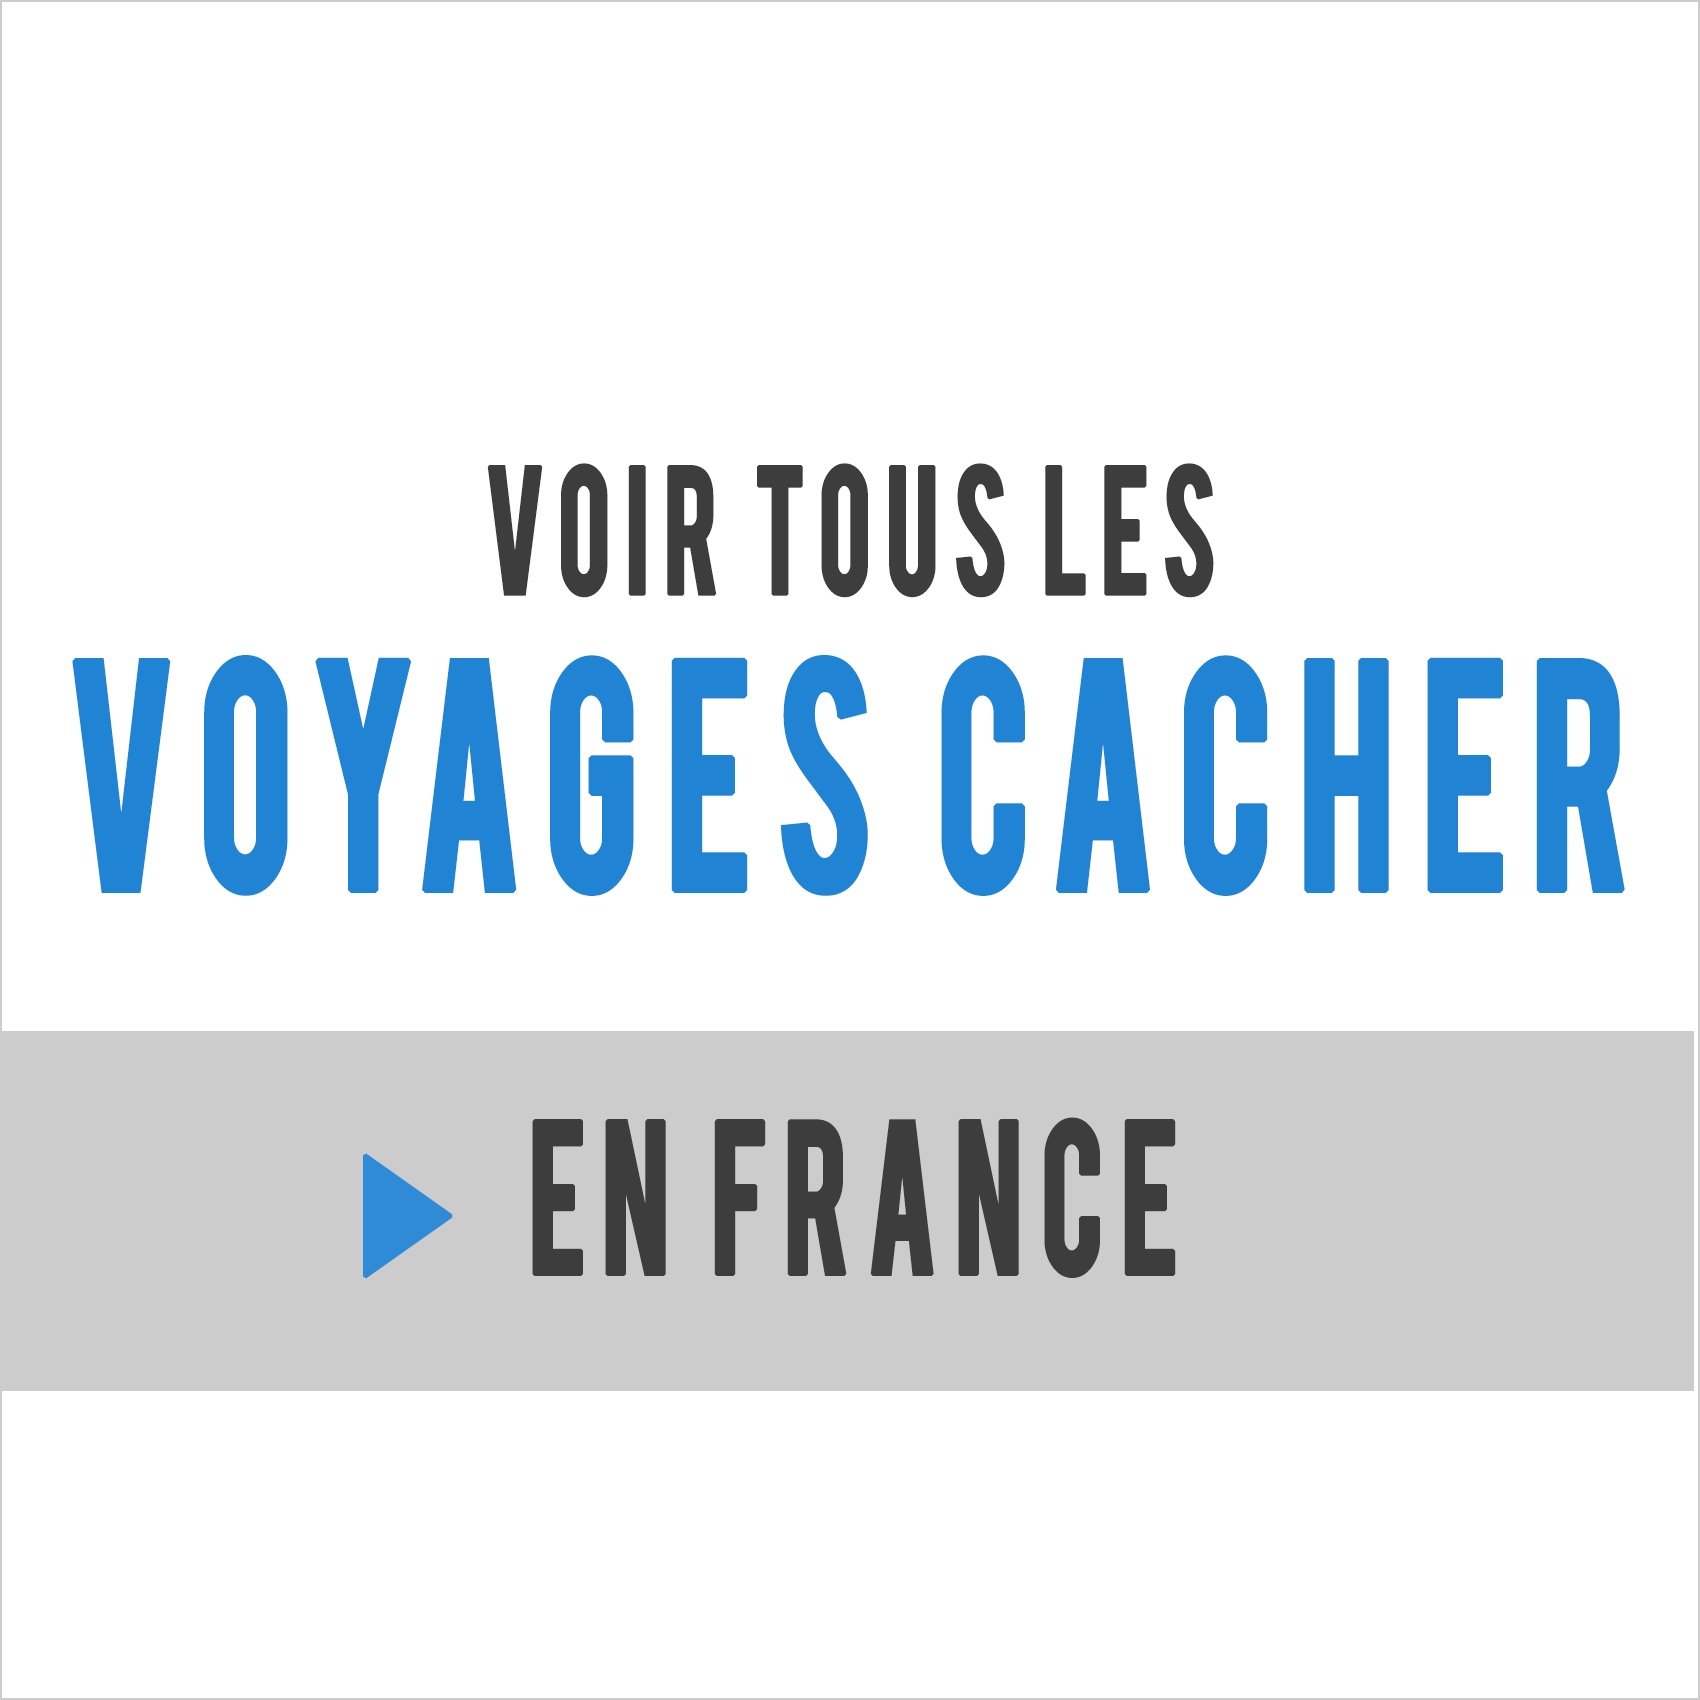 voyages cacher france